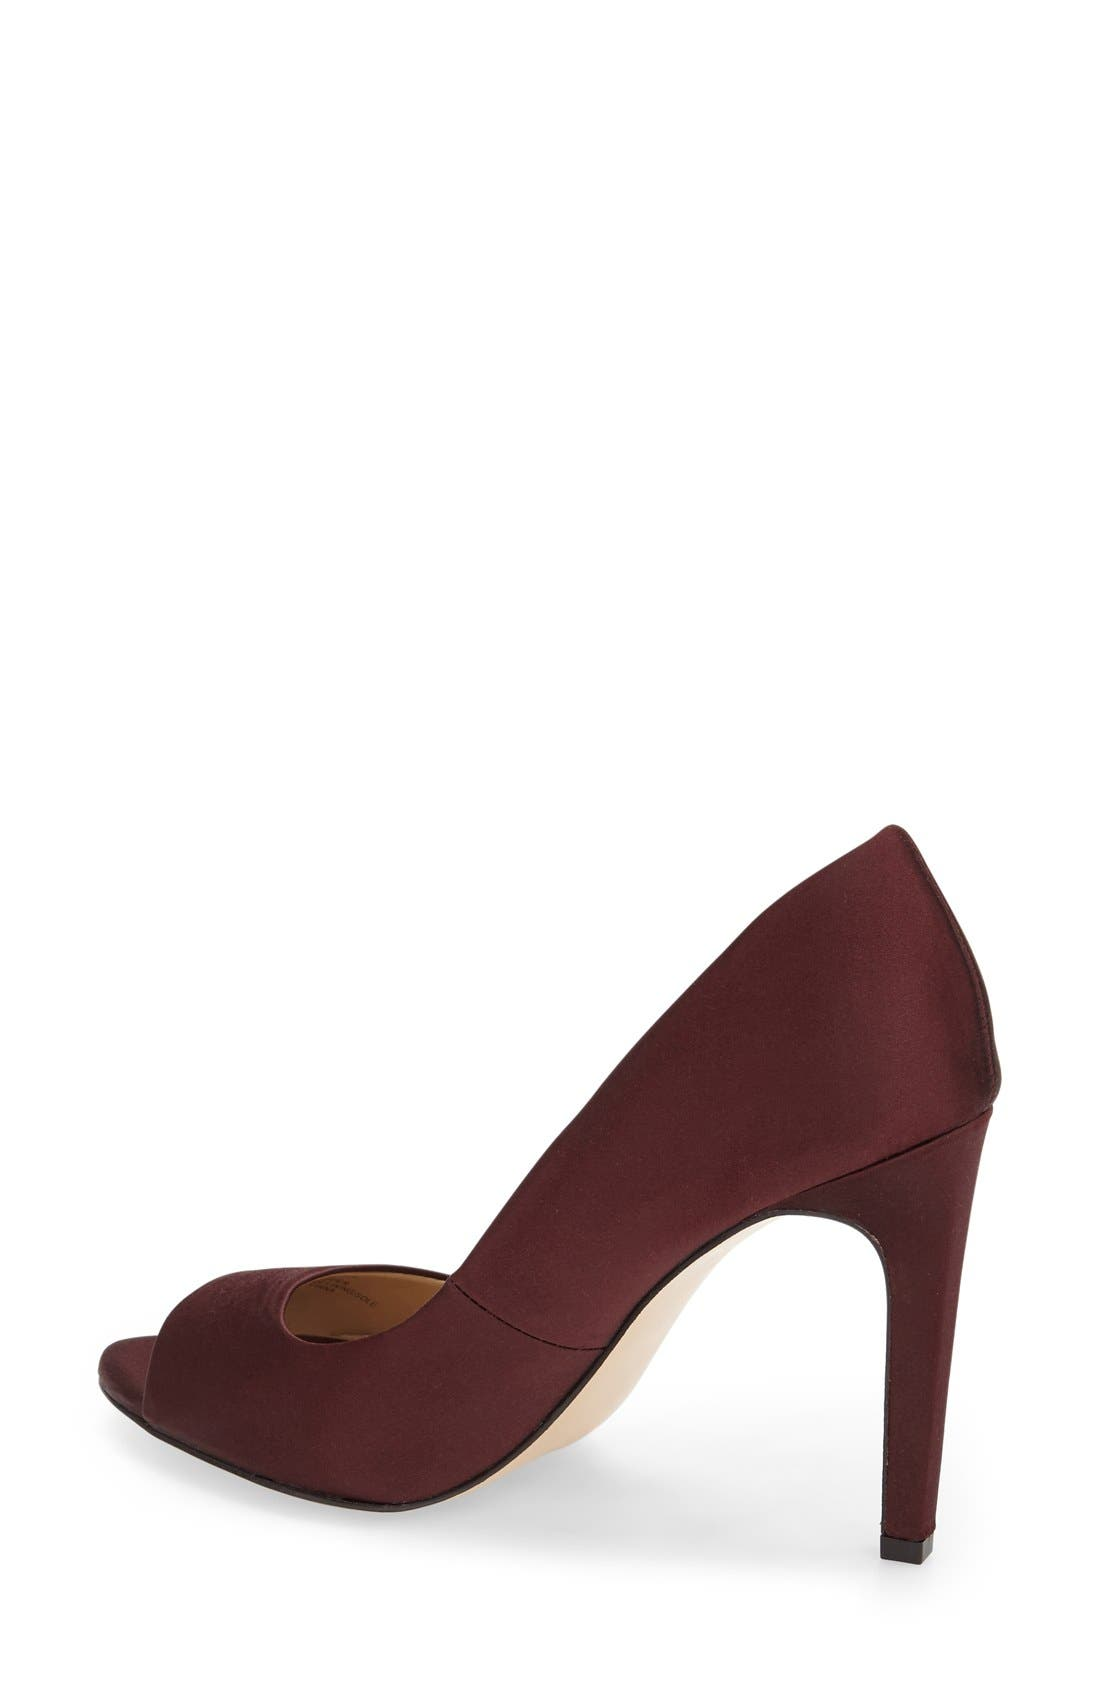 Alternate Image 2  - BCBGeneration 'Chique' Open Toe Pump (Women)